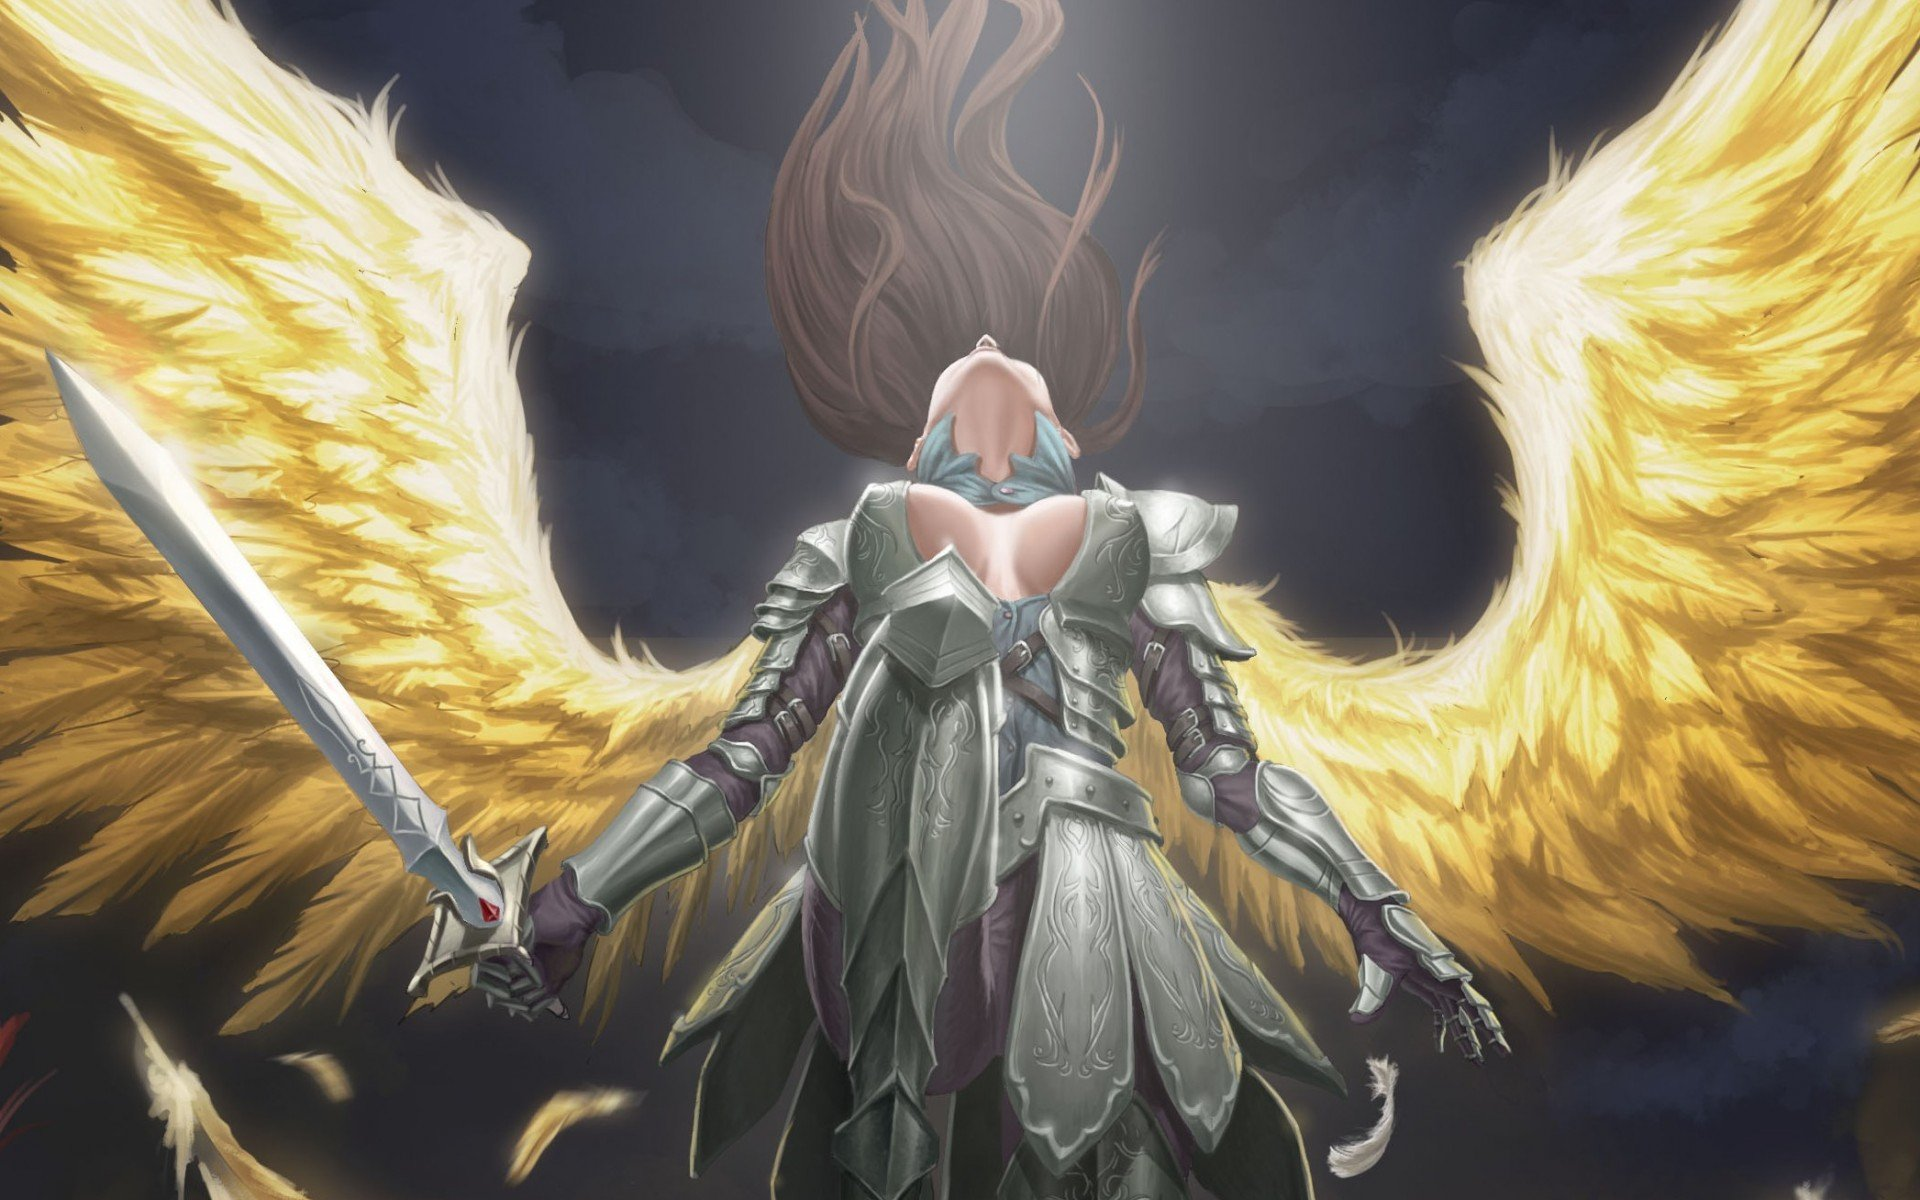 Warrior Fantasy Art Armor Angel Magic Wallpapers Hd: Angel Warrior Full HD Wallpaper And Background Image